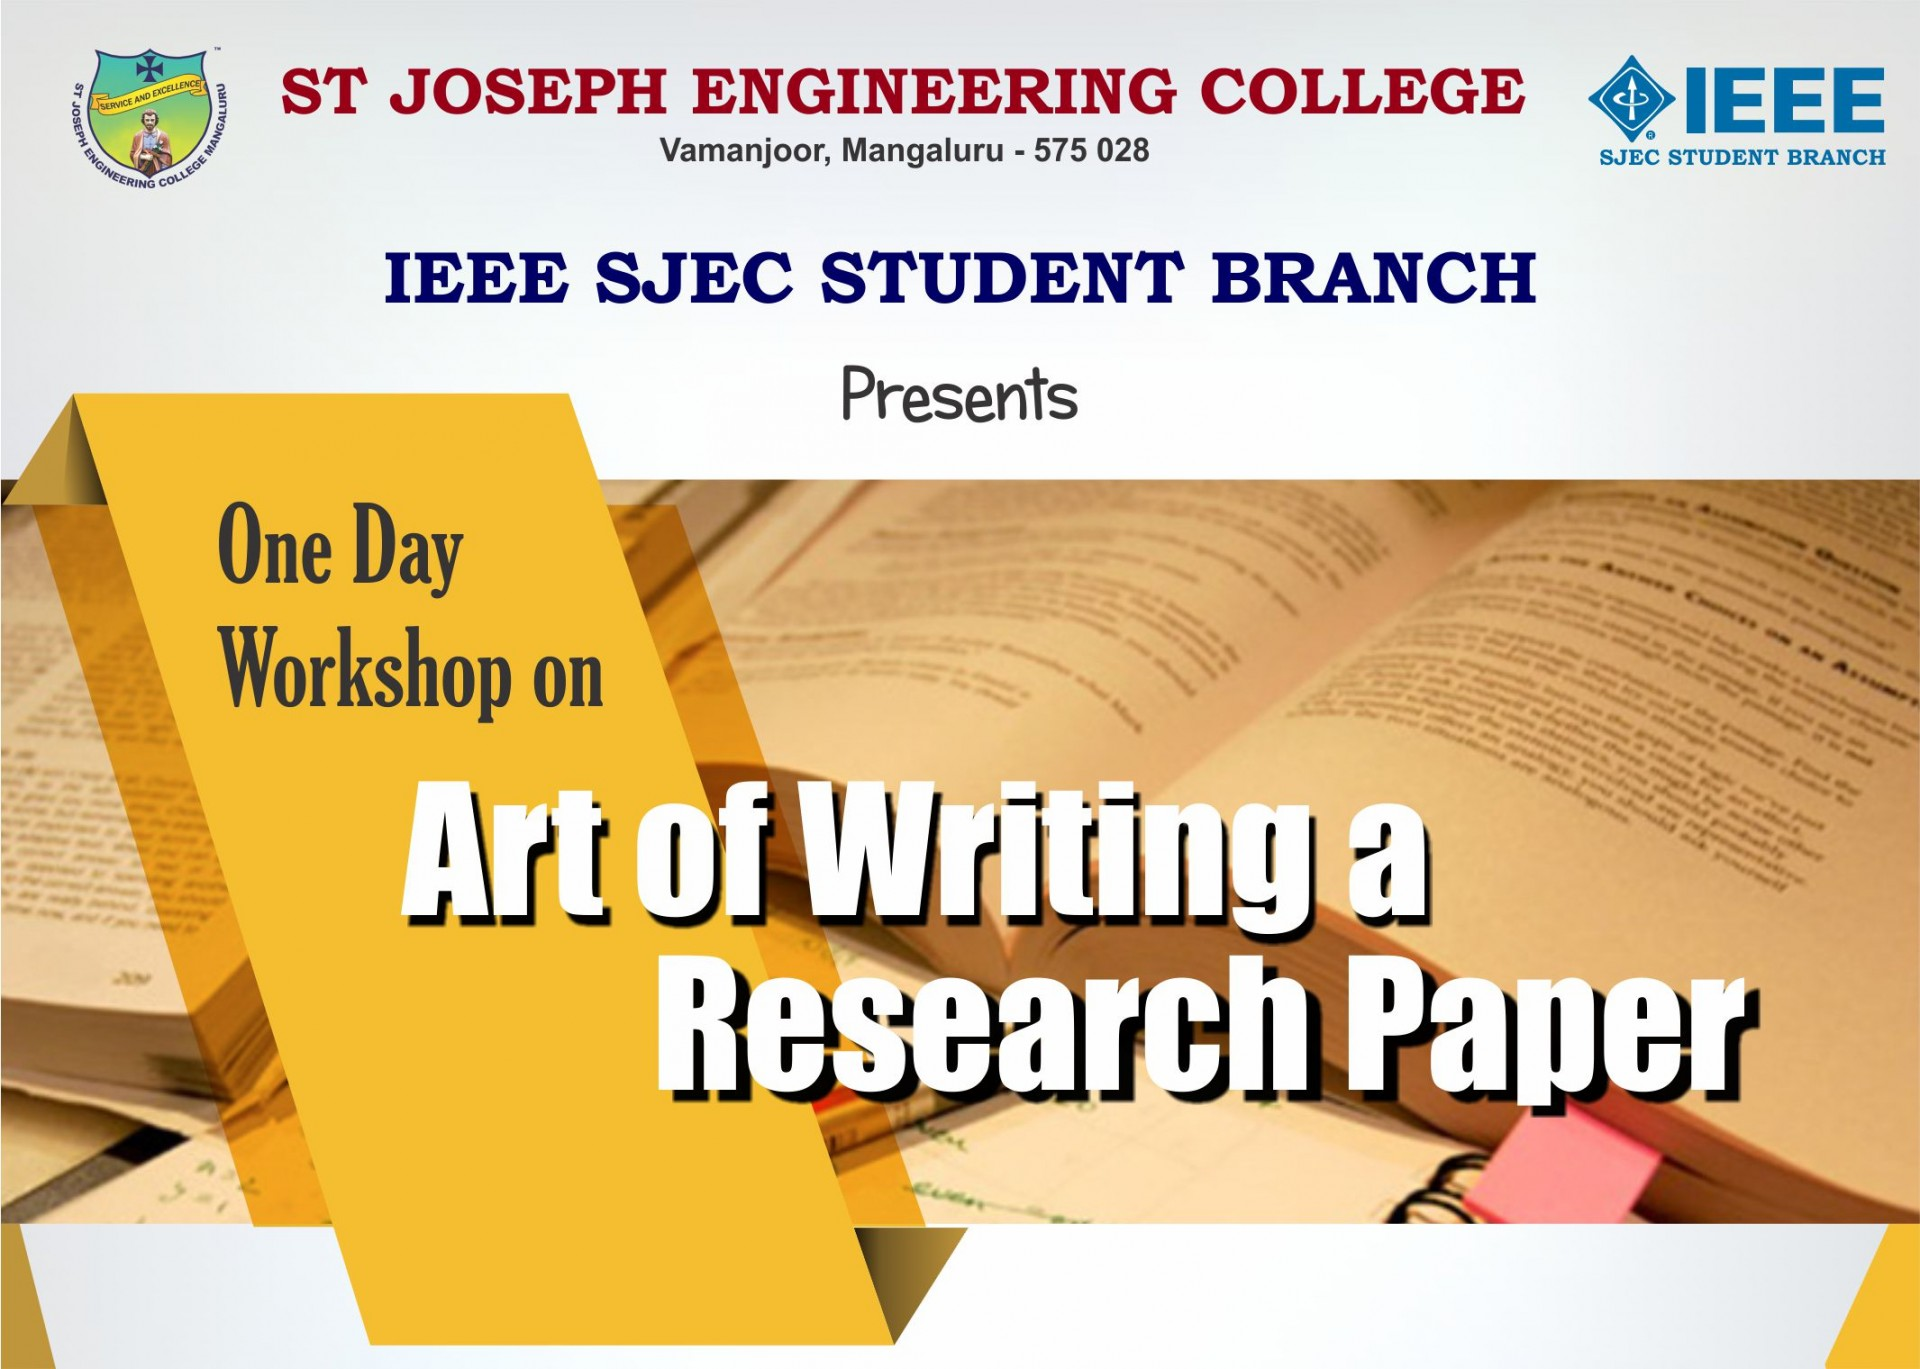 005 Workshop Banner Researchs Writing Fascinating Research Papers Paper Skills Ppt Pdf Tips 1920